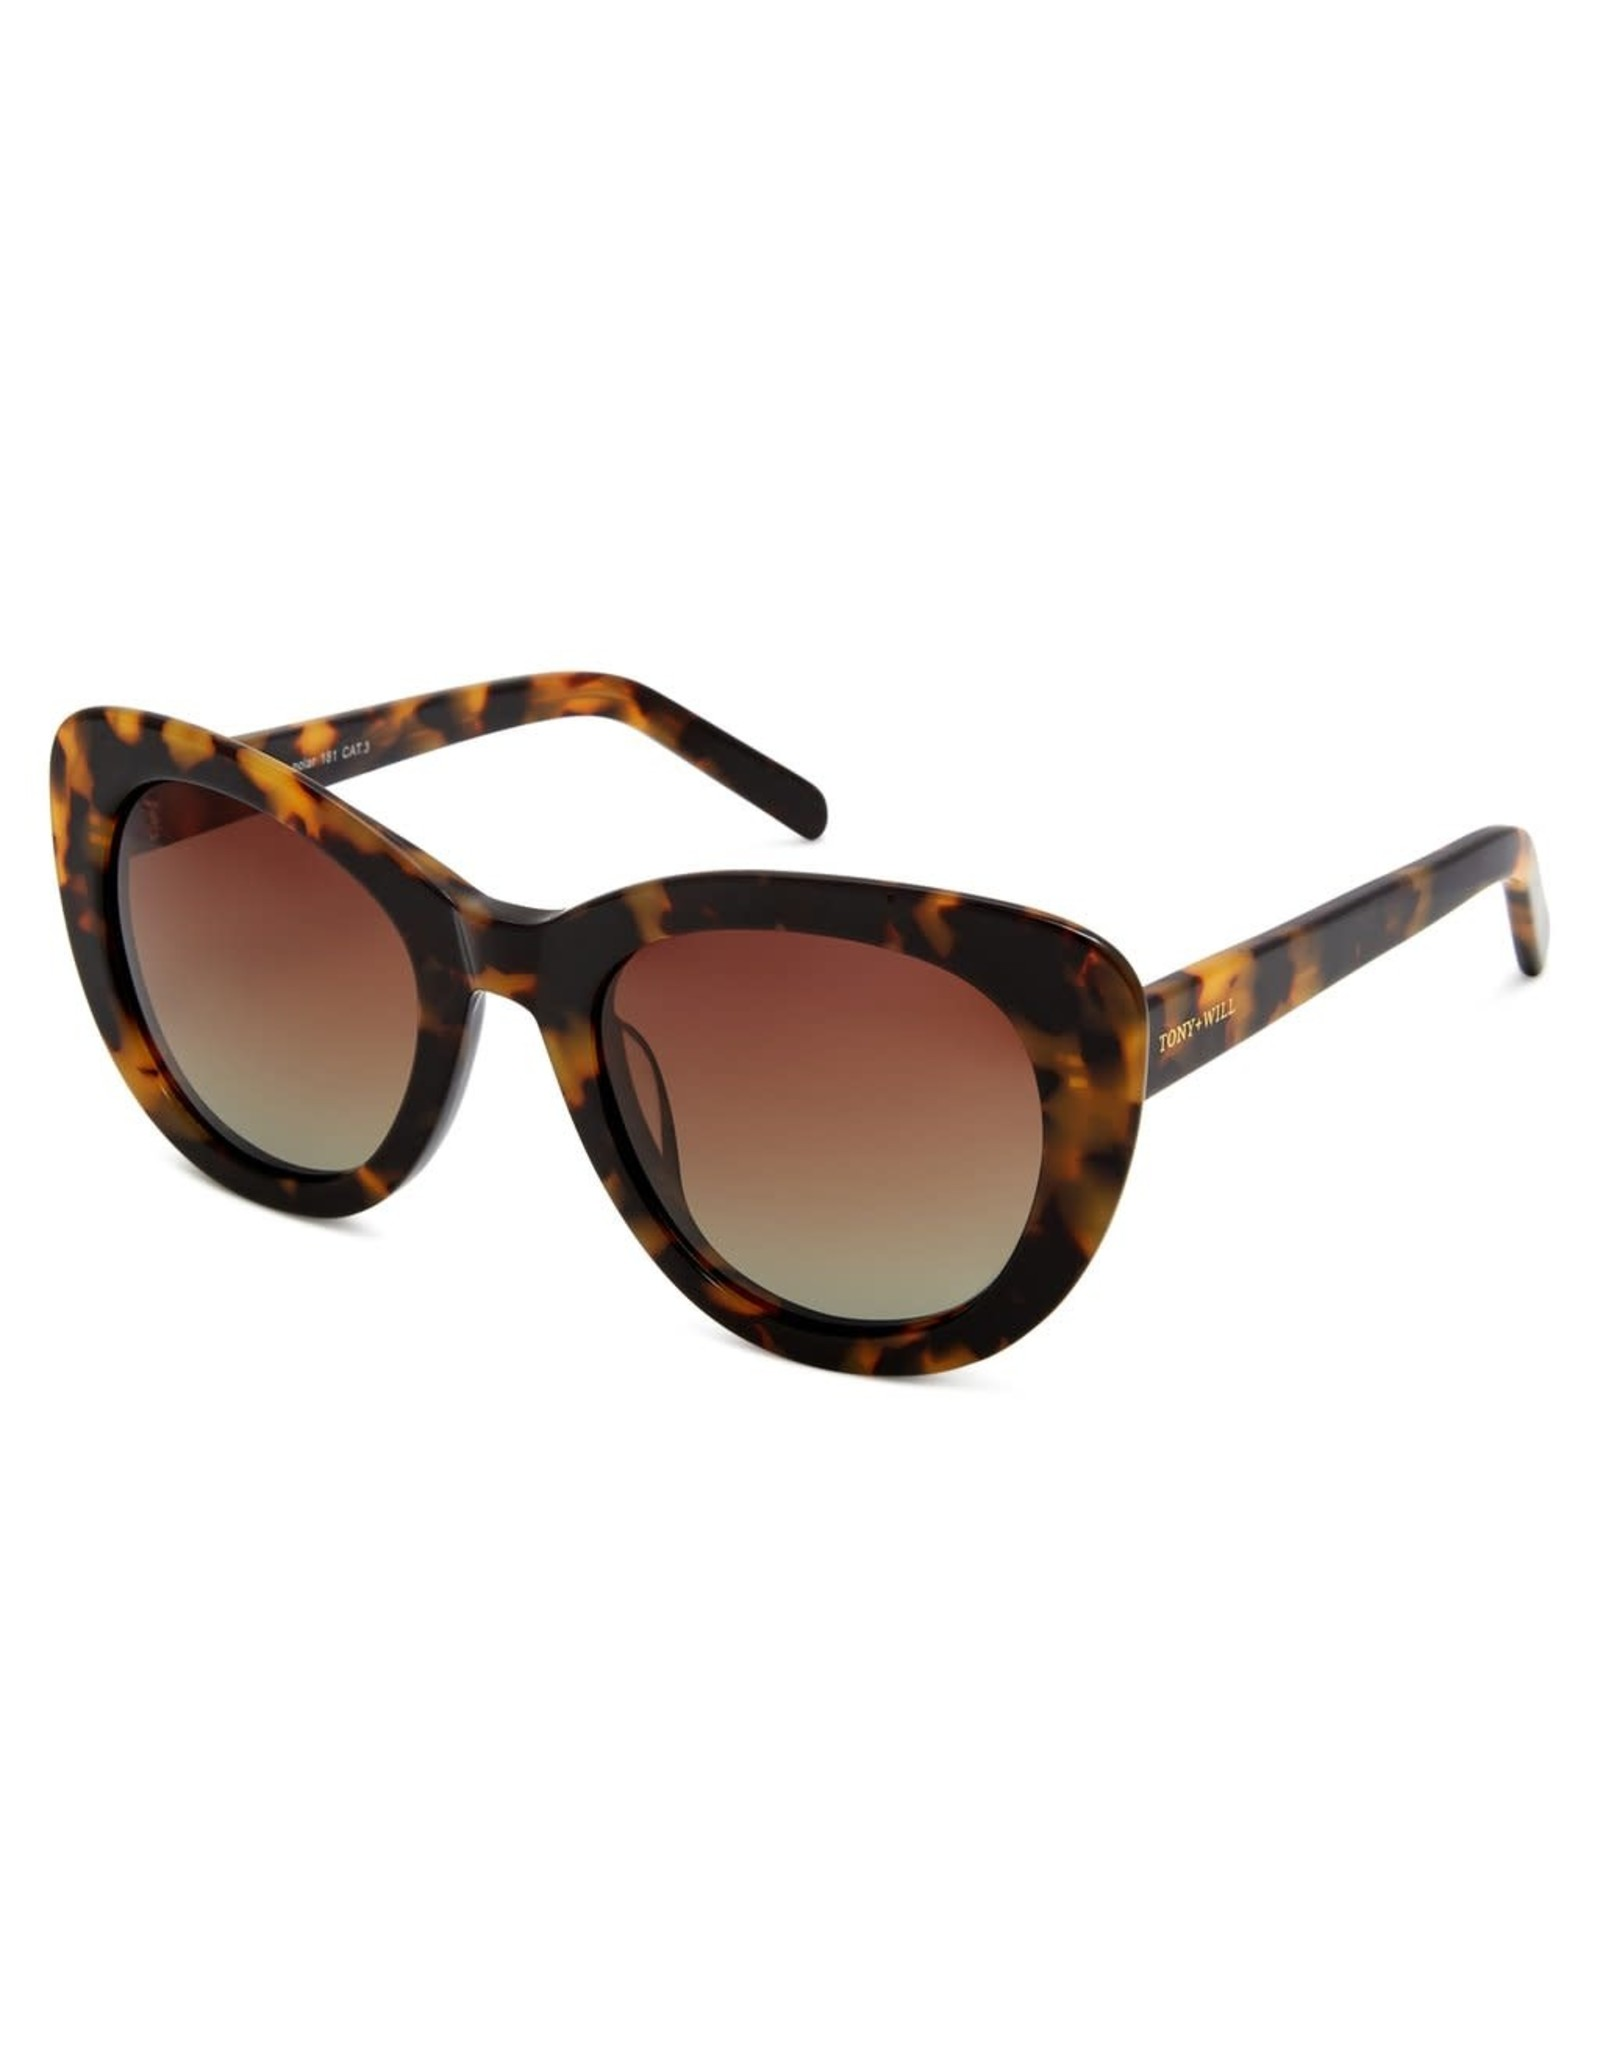 Delta Polarised Retro Cat Eye Frame Womens Sunglasses - Brown Grad Lens